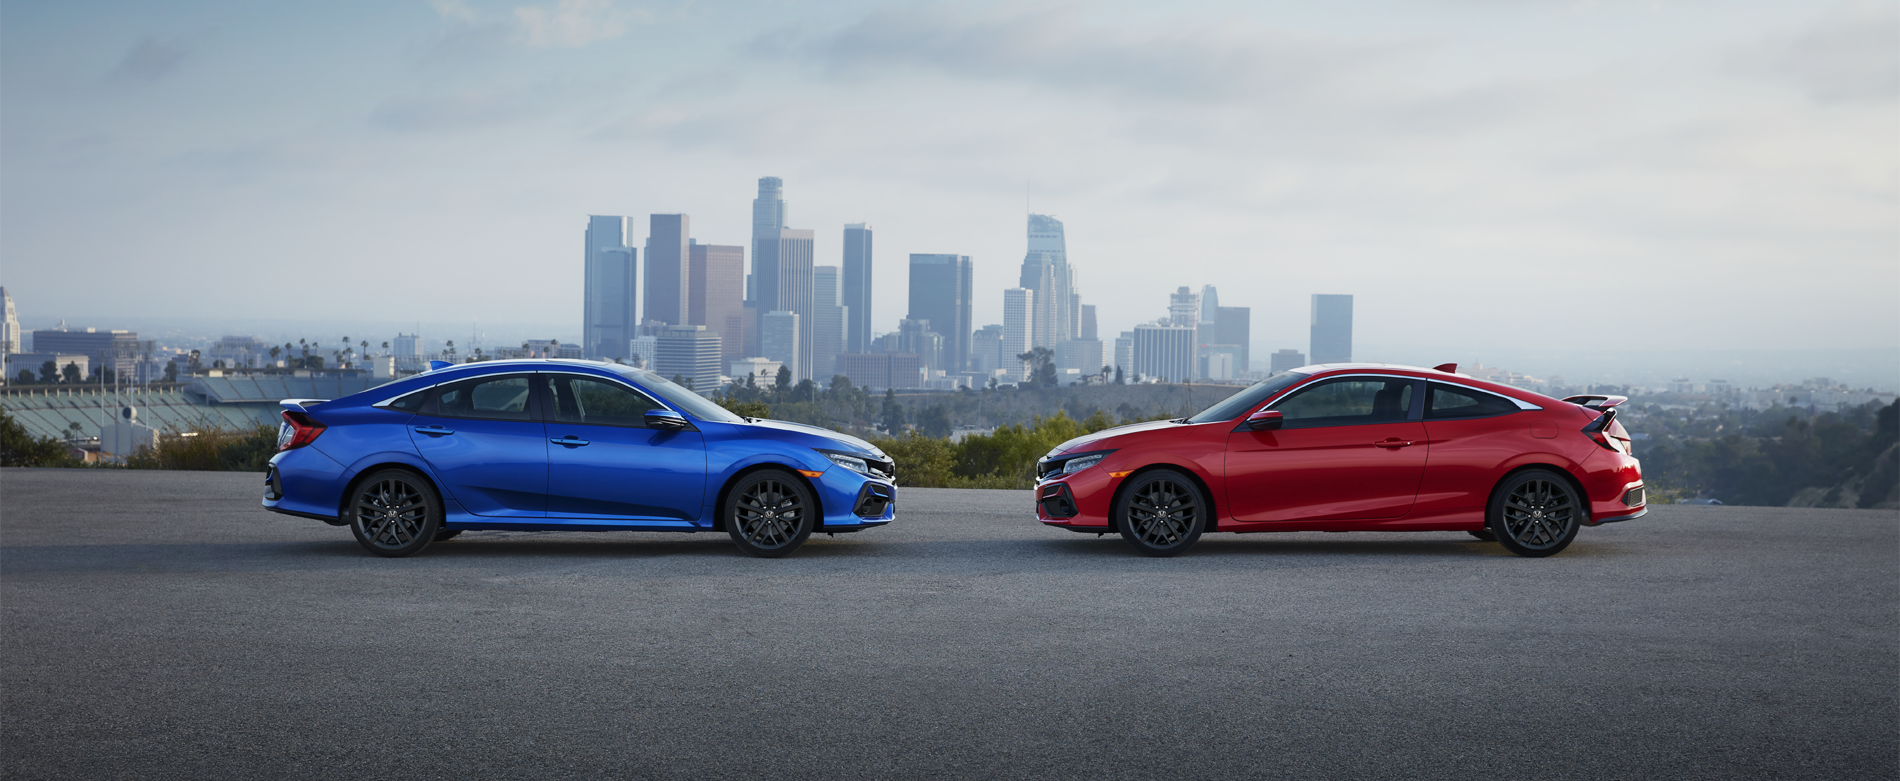 2020 Honda Civic Sedan and Coupe